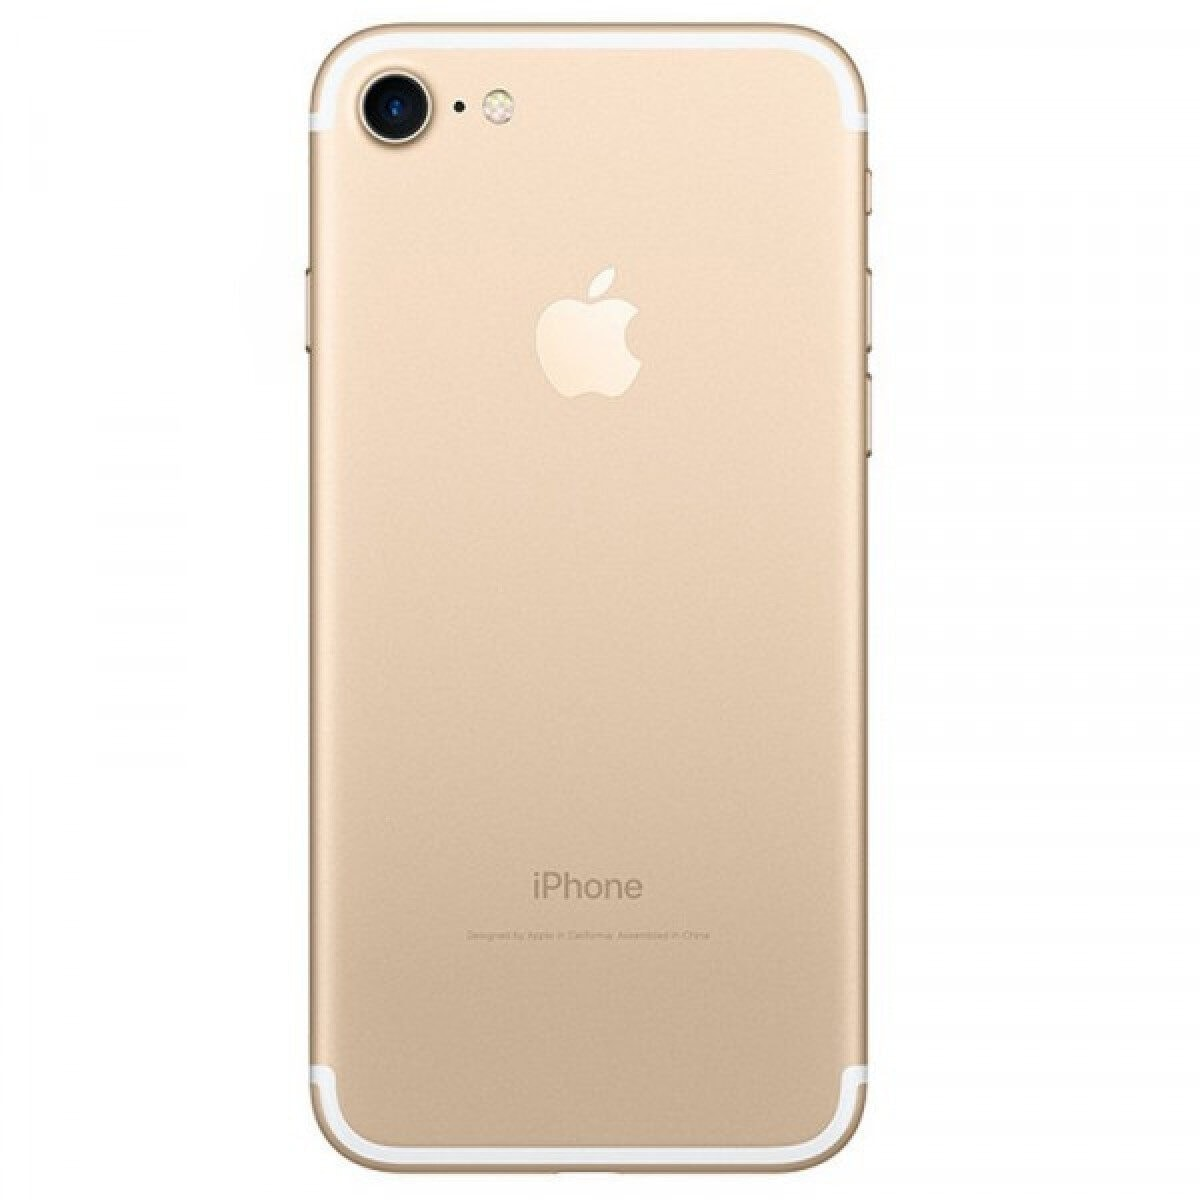 Apple IPhone 7 Gold 128GB Unlocked Sim-Free Retina Mobile Phone Refurbished 12 Months Warranty